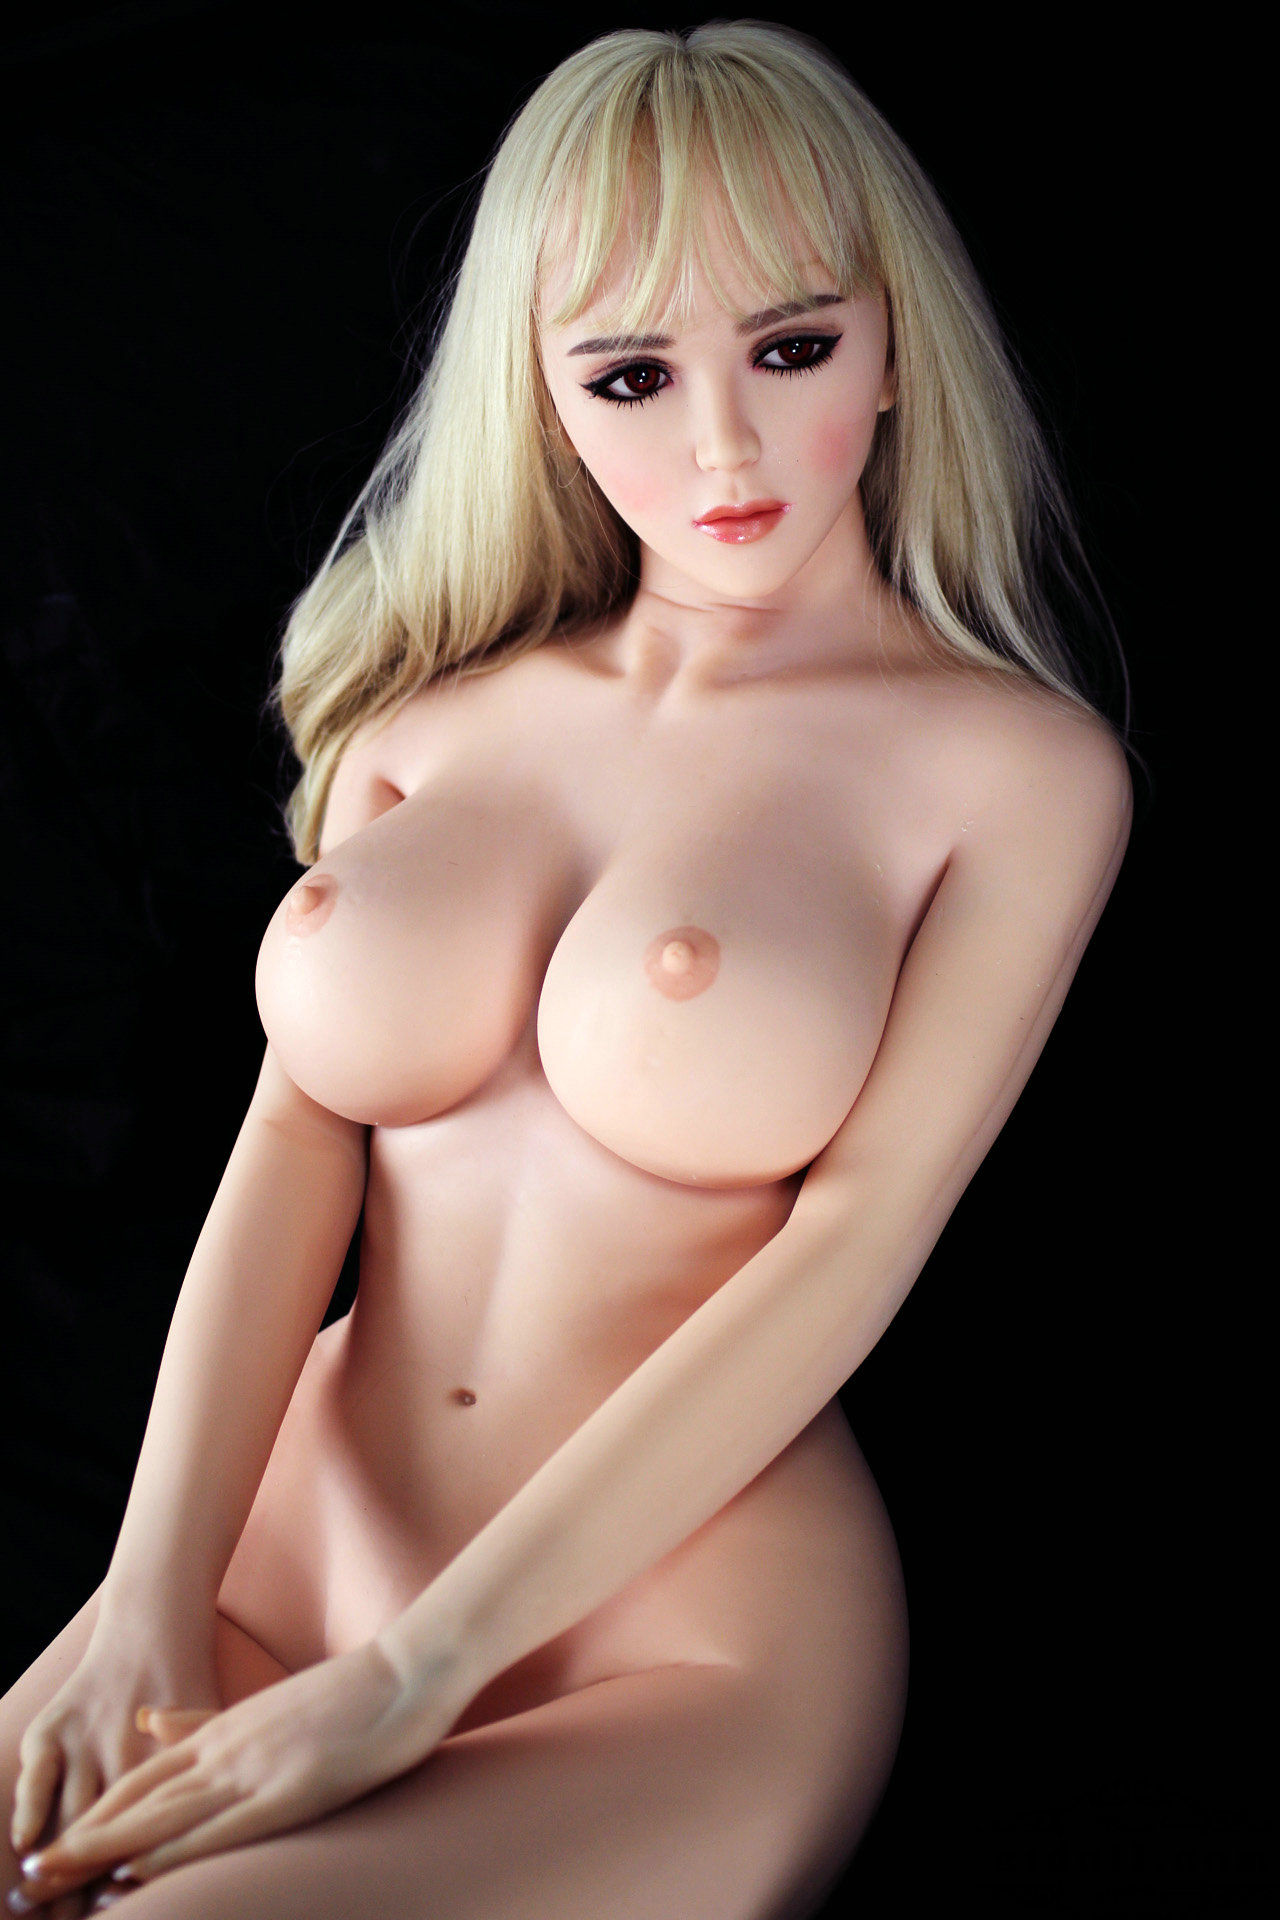 165cm 5.41ft Ivy sex doll